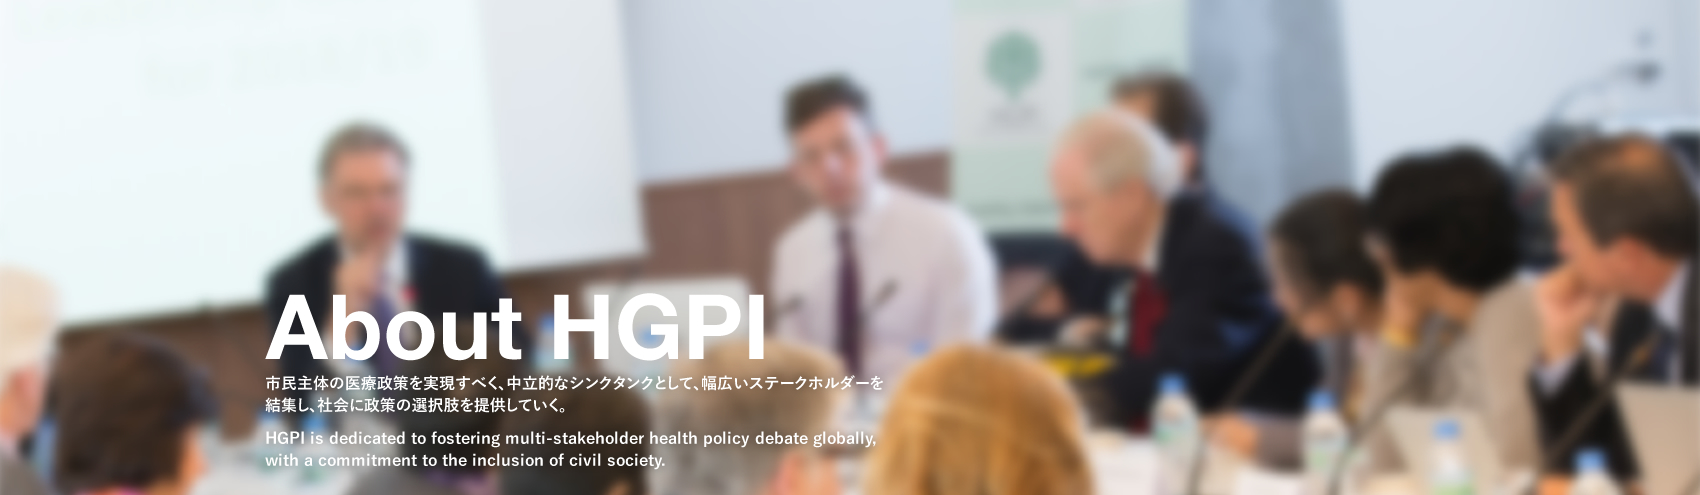 About HGPI